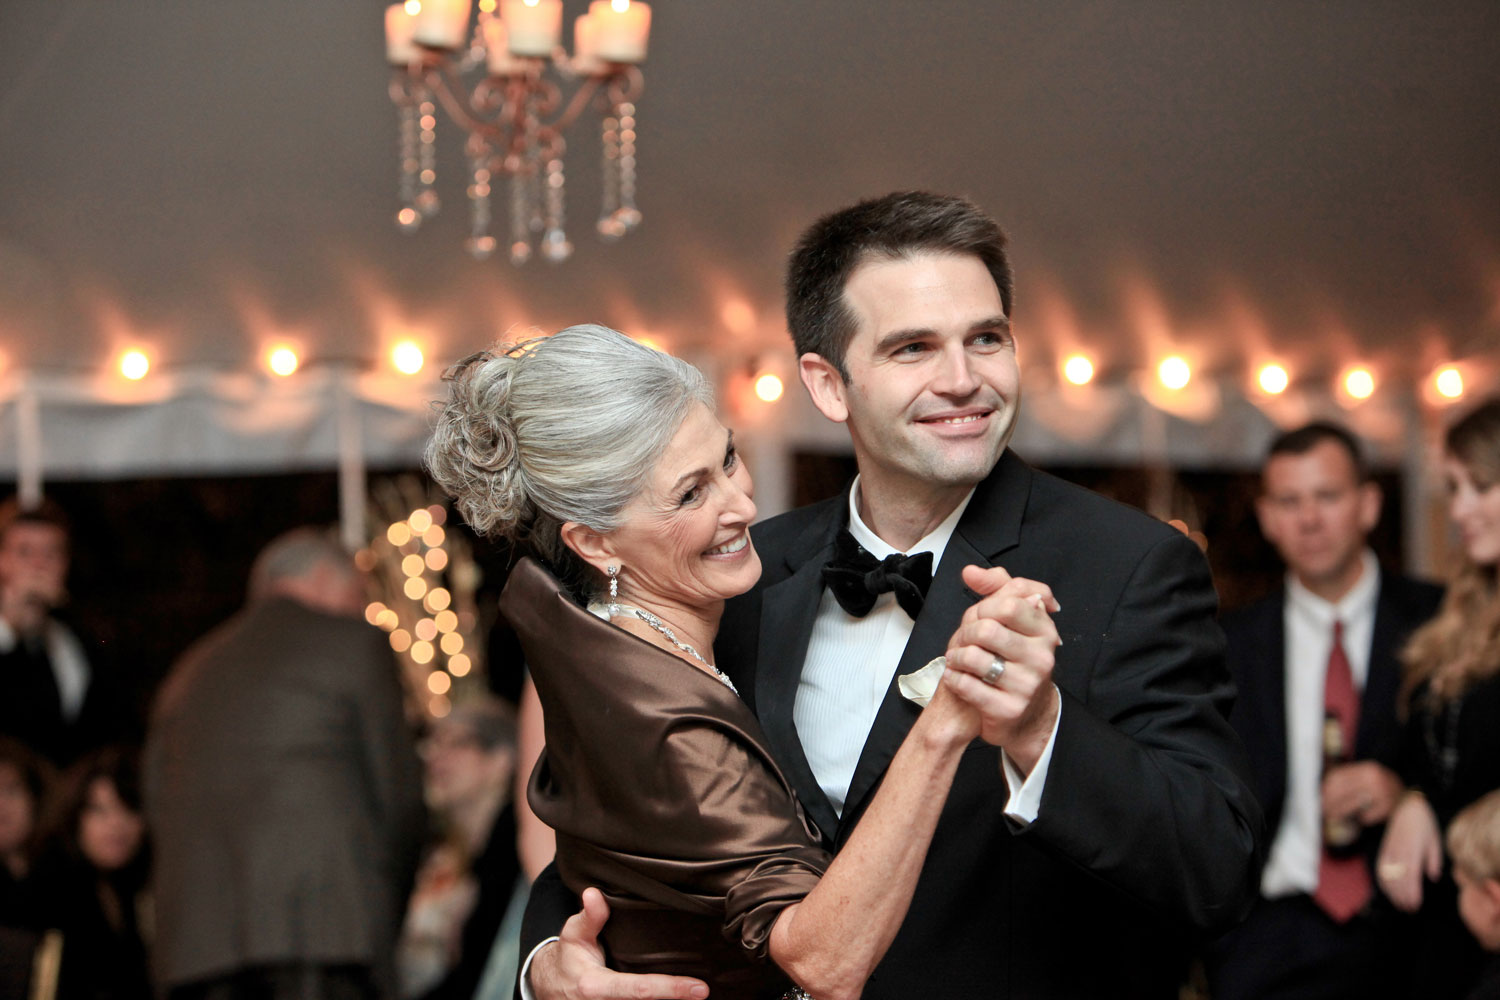 Cute mother of bride in evening gown dancing with son during mother son dance